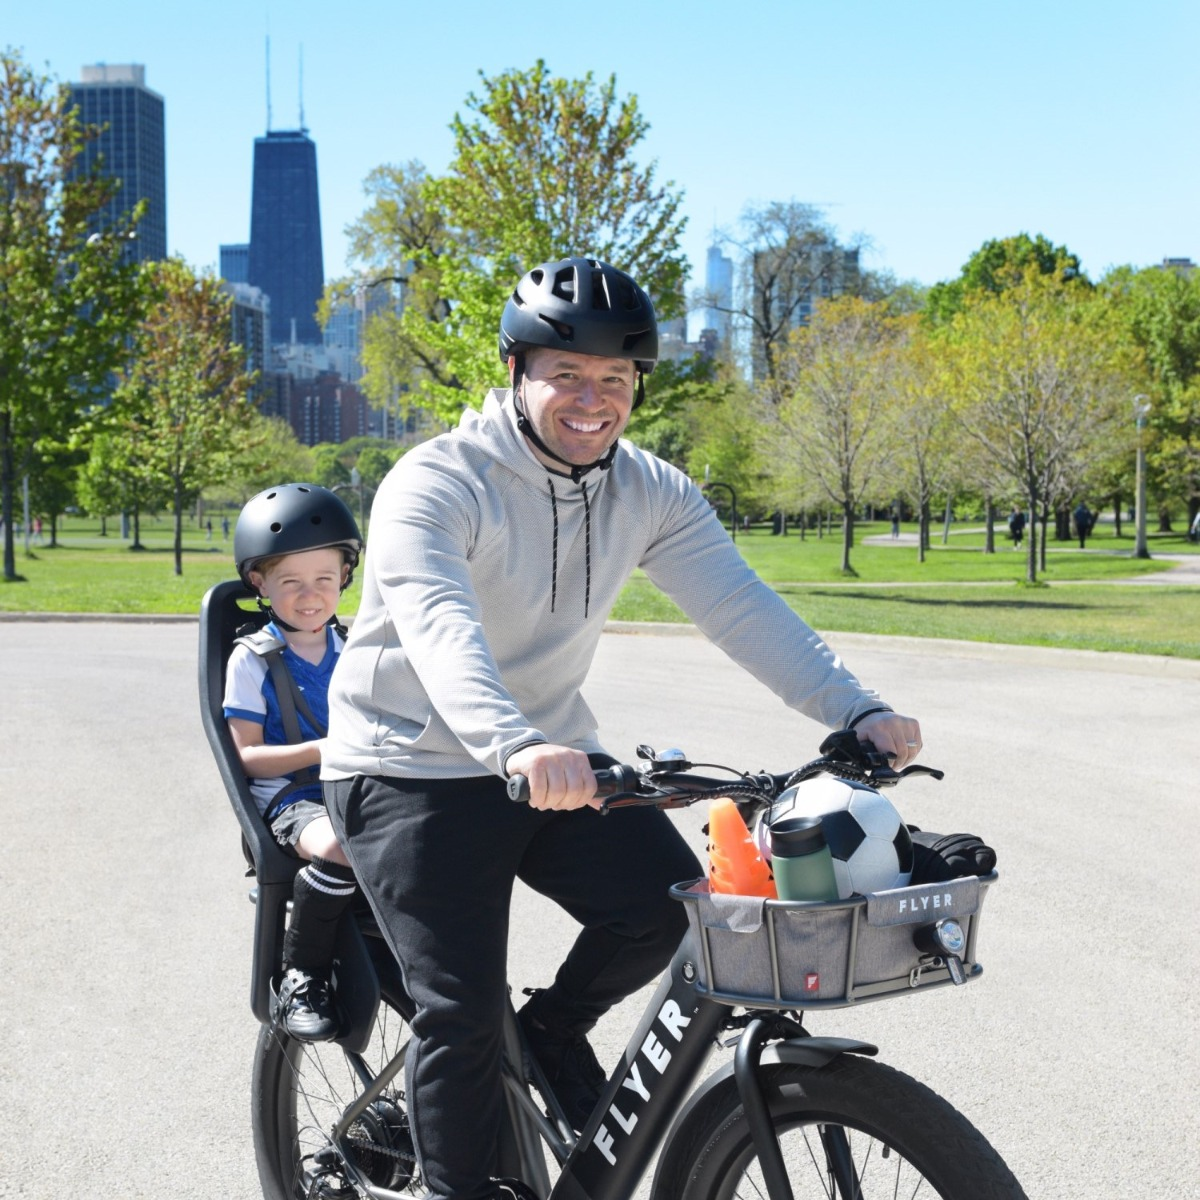 Father and son riding electric bike in the park